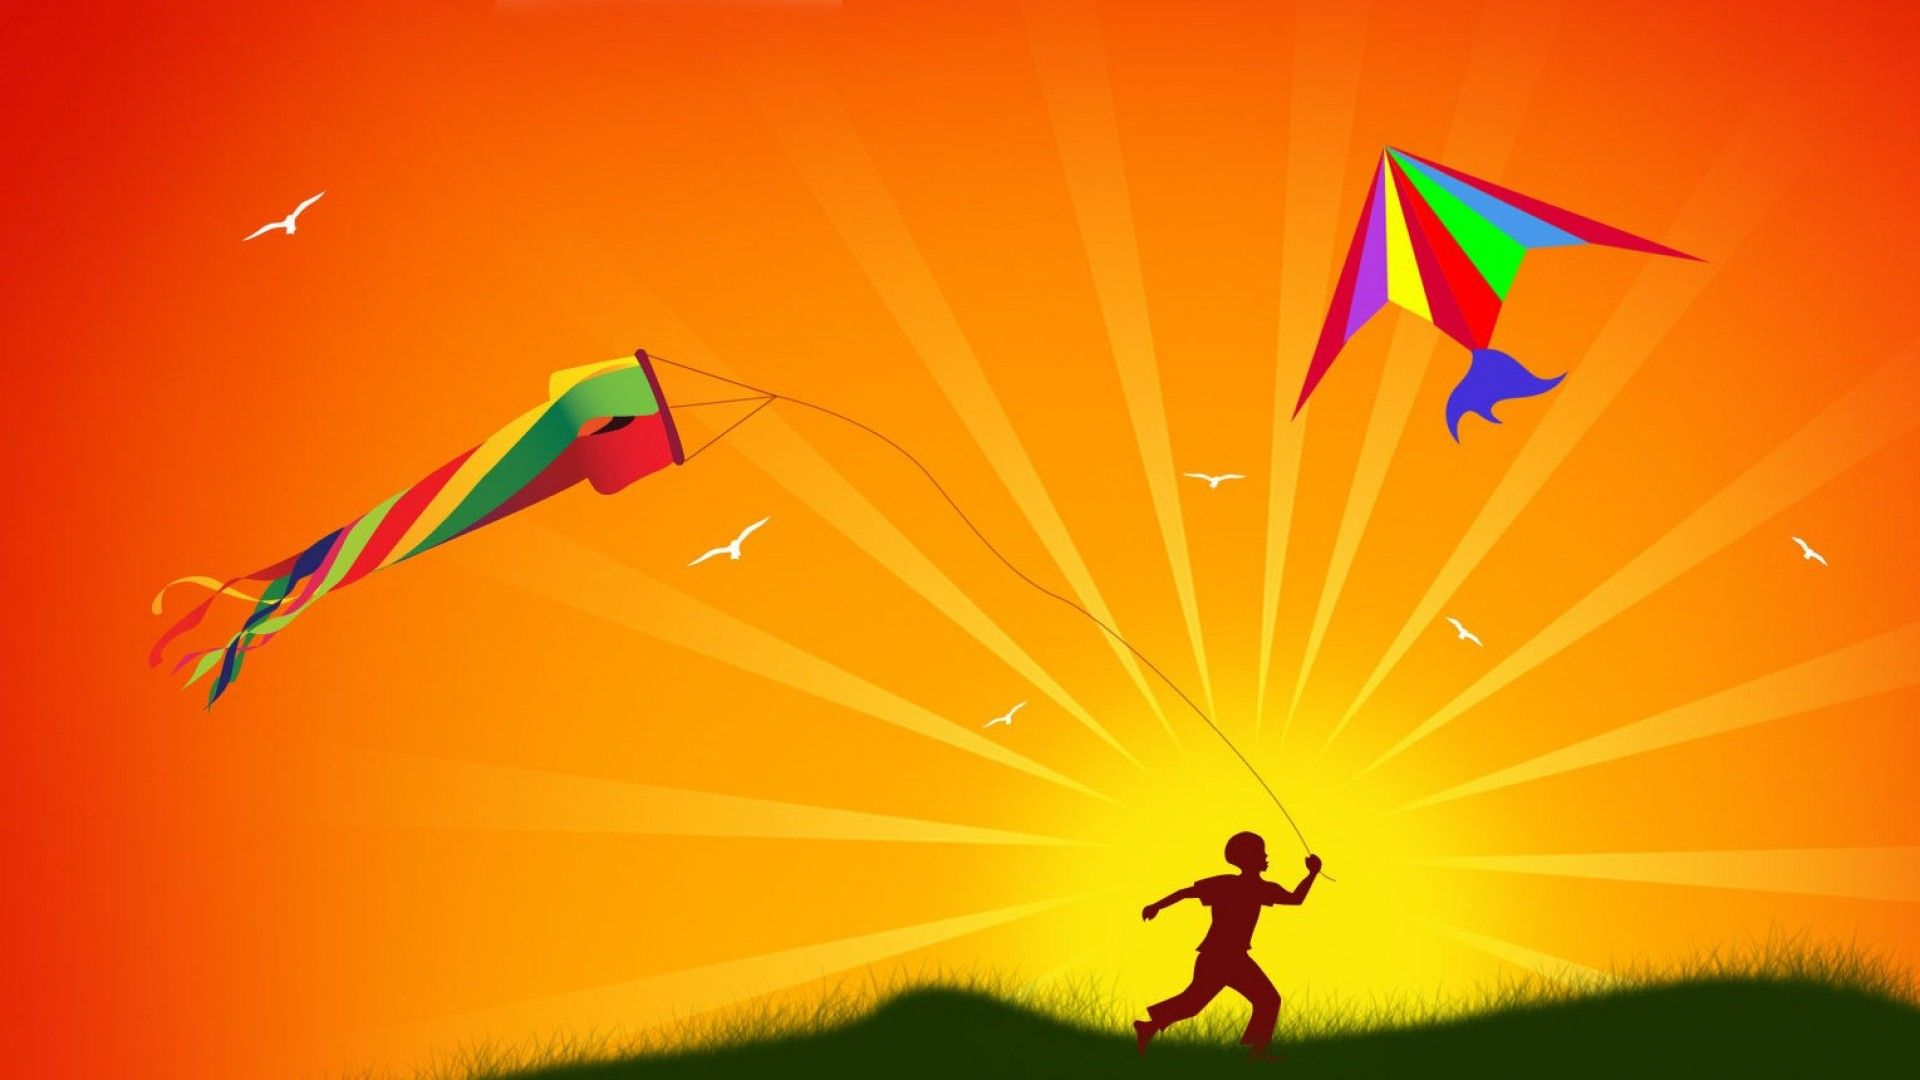 Kite Wallpaper Image Group 35 1920x1080